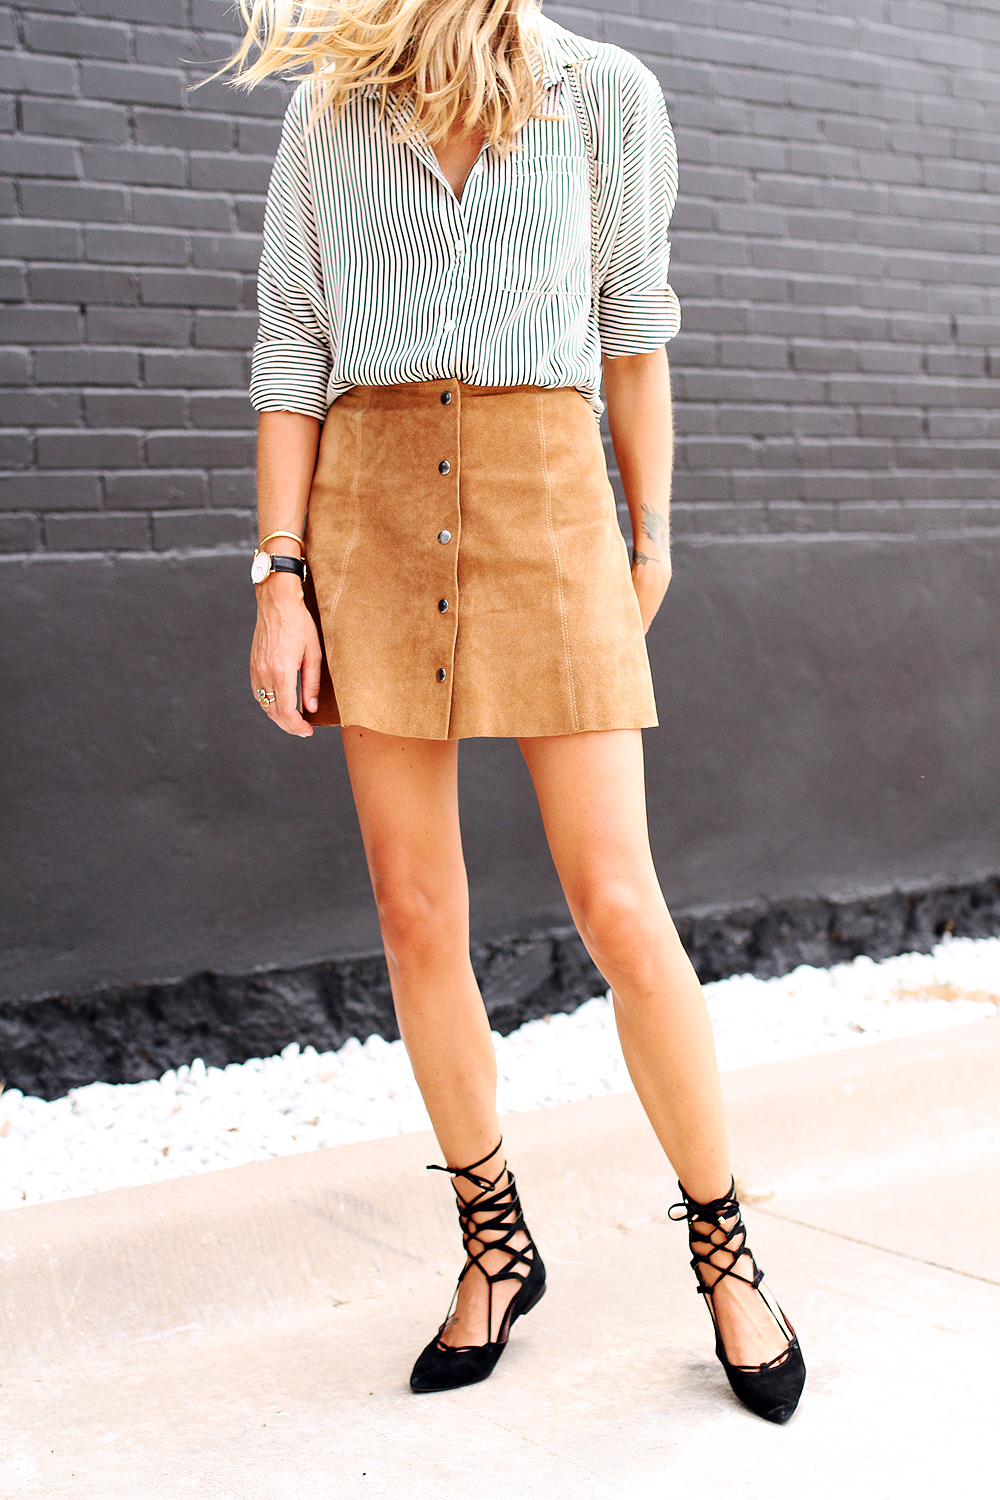 fashion-jackson-topshop-tan-suede-button-front-skirt-jeffery-campbell-black-lace-up-flats-black-and-white-stripe-shirt